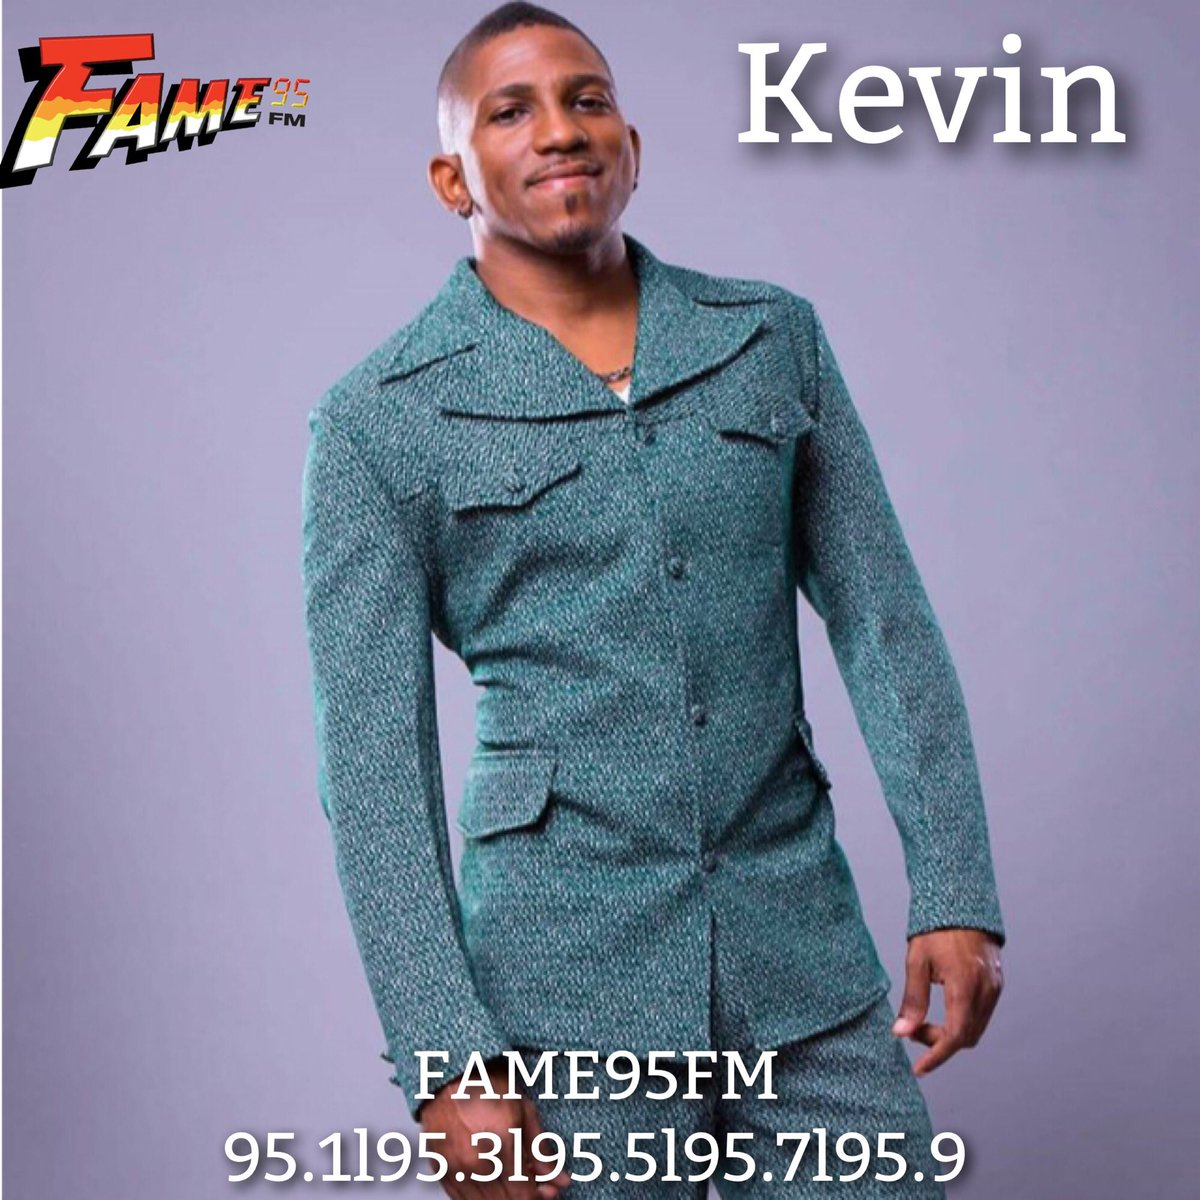 c0adb18400 Happy Monday start your week with a blazing energy with us in #TheRising.  #FAME95FM #fame95fm1 #mondaymotivation #mondaymood #Kevin #TheRising ...